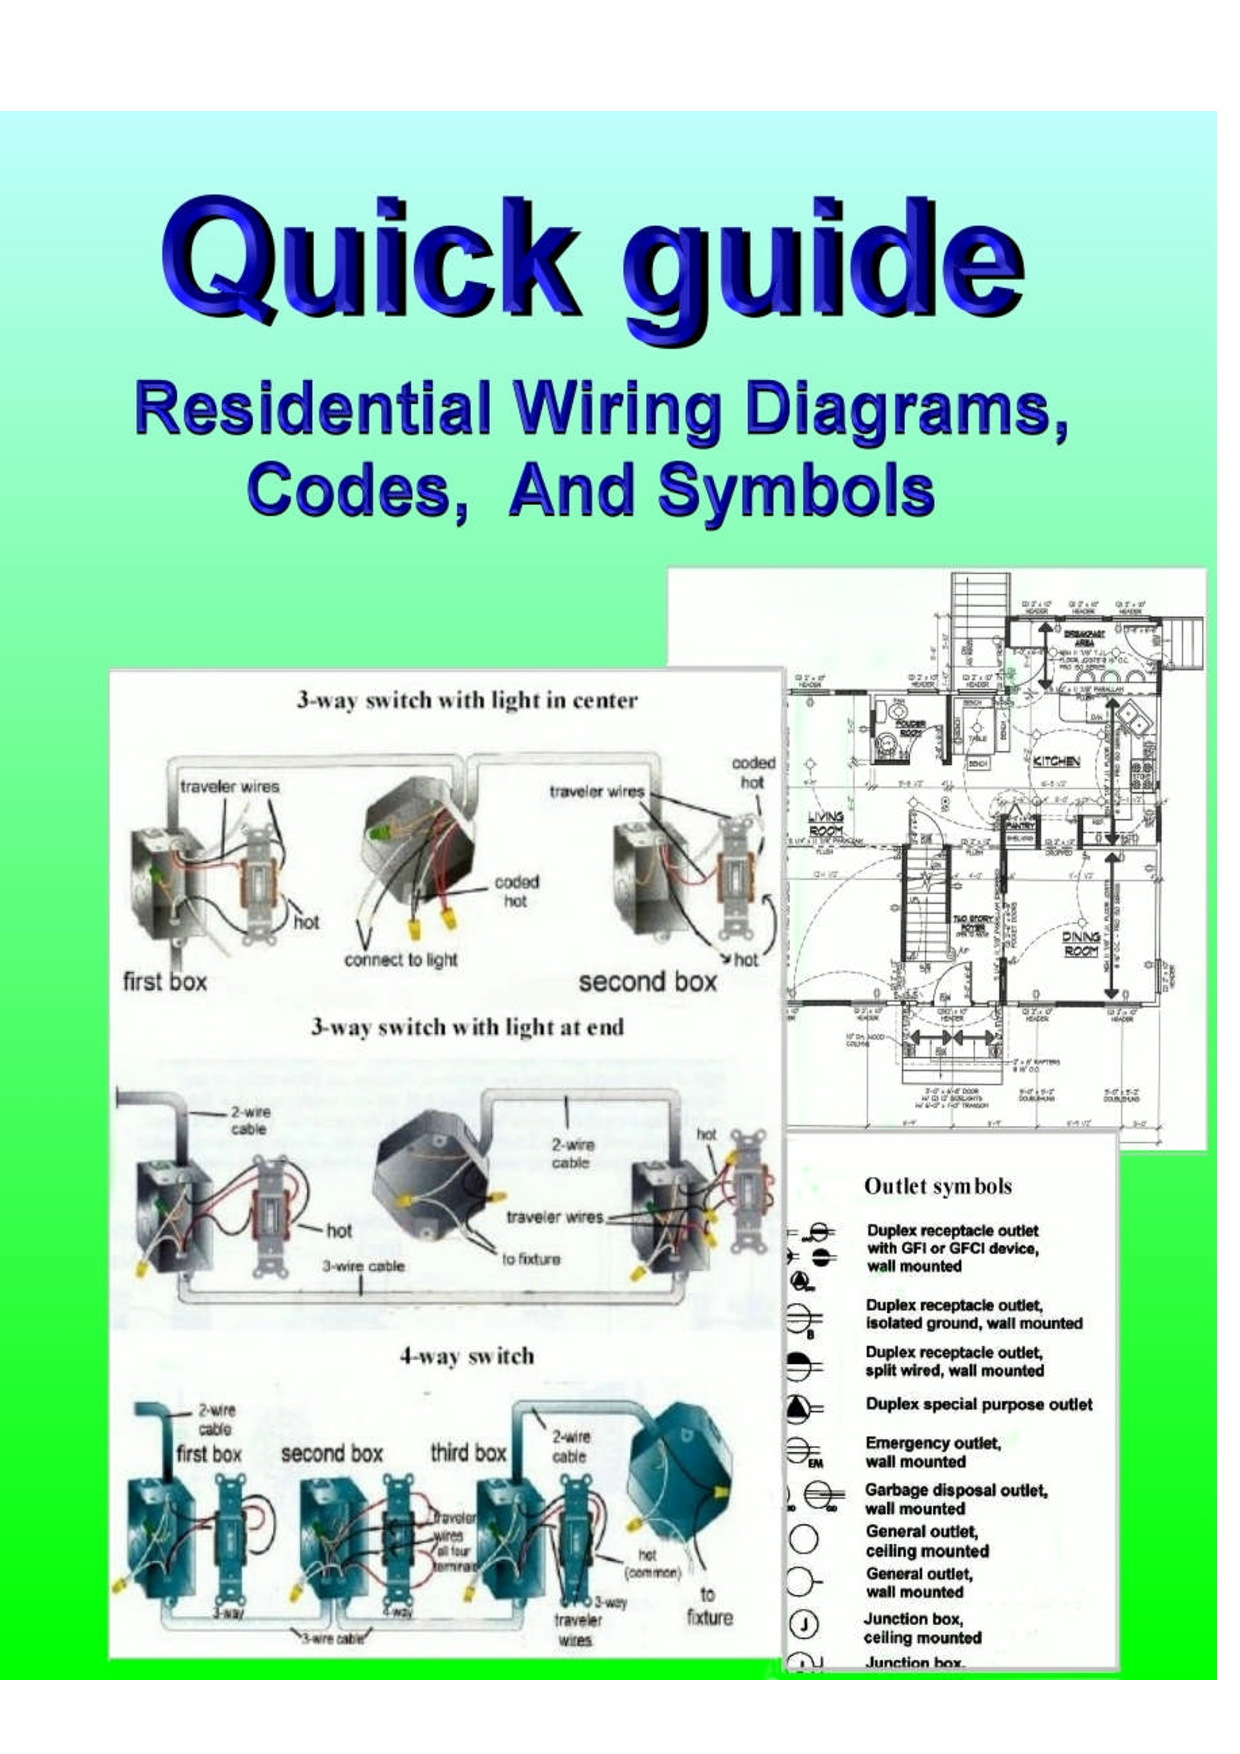 Wondrous Residential Electric Wiring Diagrams Wiring Diagram Wiring Digital Resources Zidurslowmaporg